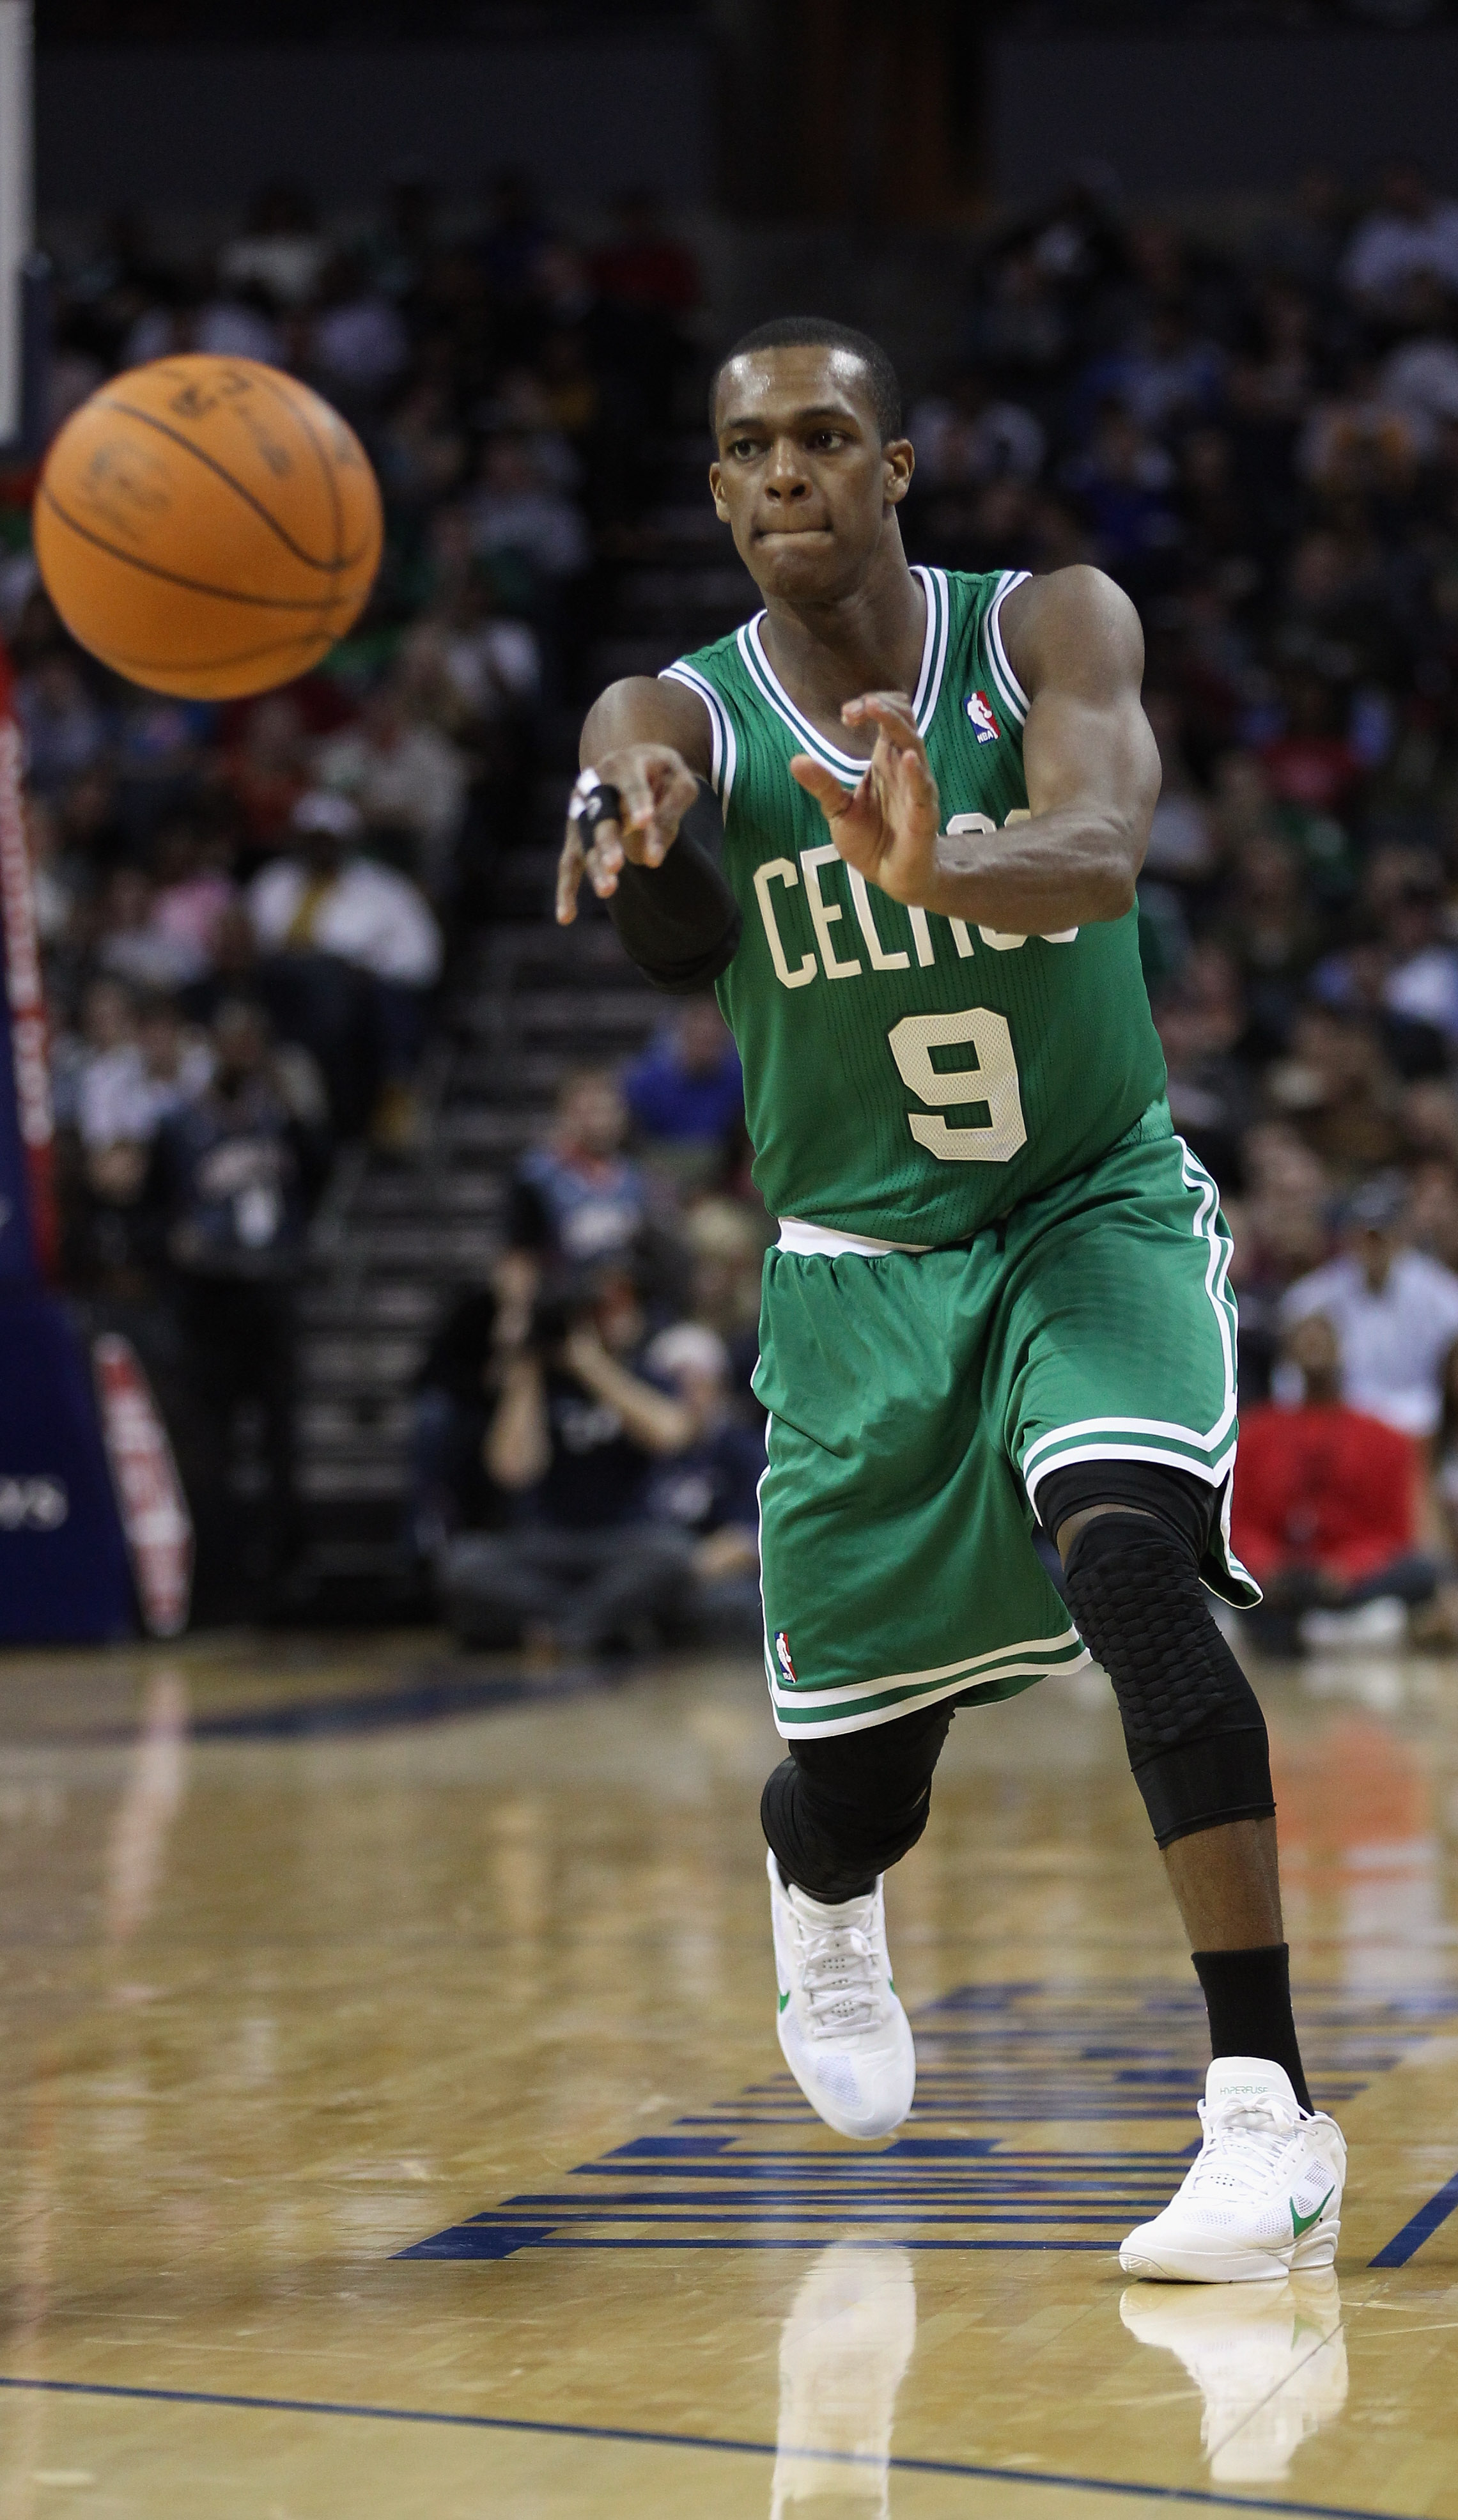 CHARLOTTE, NC - DECEMBER 11:  Rajon Rondo #9 of the Boston Celtics against the Charlotte Bobcats during their game at Time Warner Cable Arena on December 11, 2010 in Charlotte, North Carolina. NOTE TO USER: User expressly acknowledges and agrees that, by